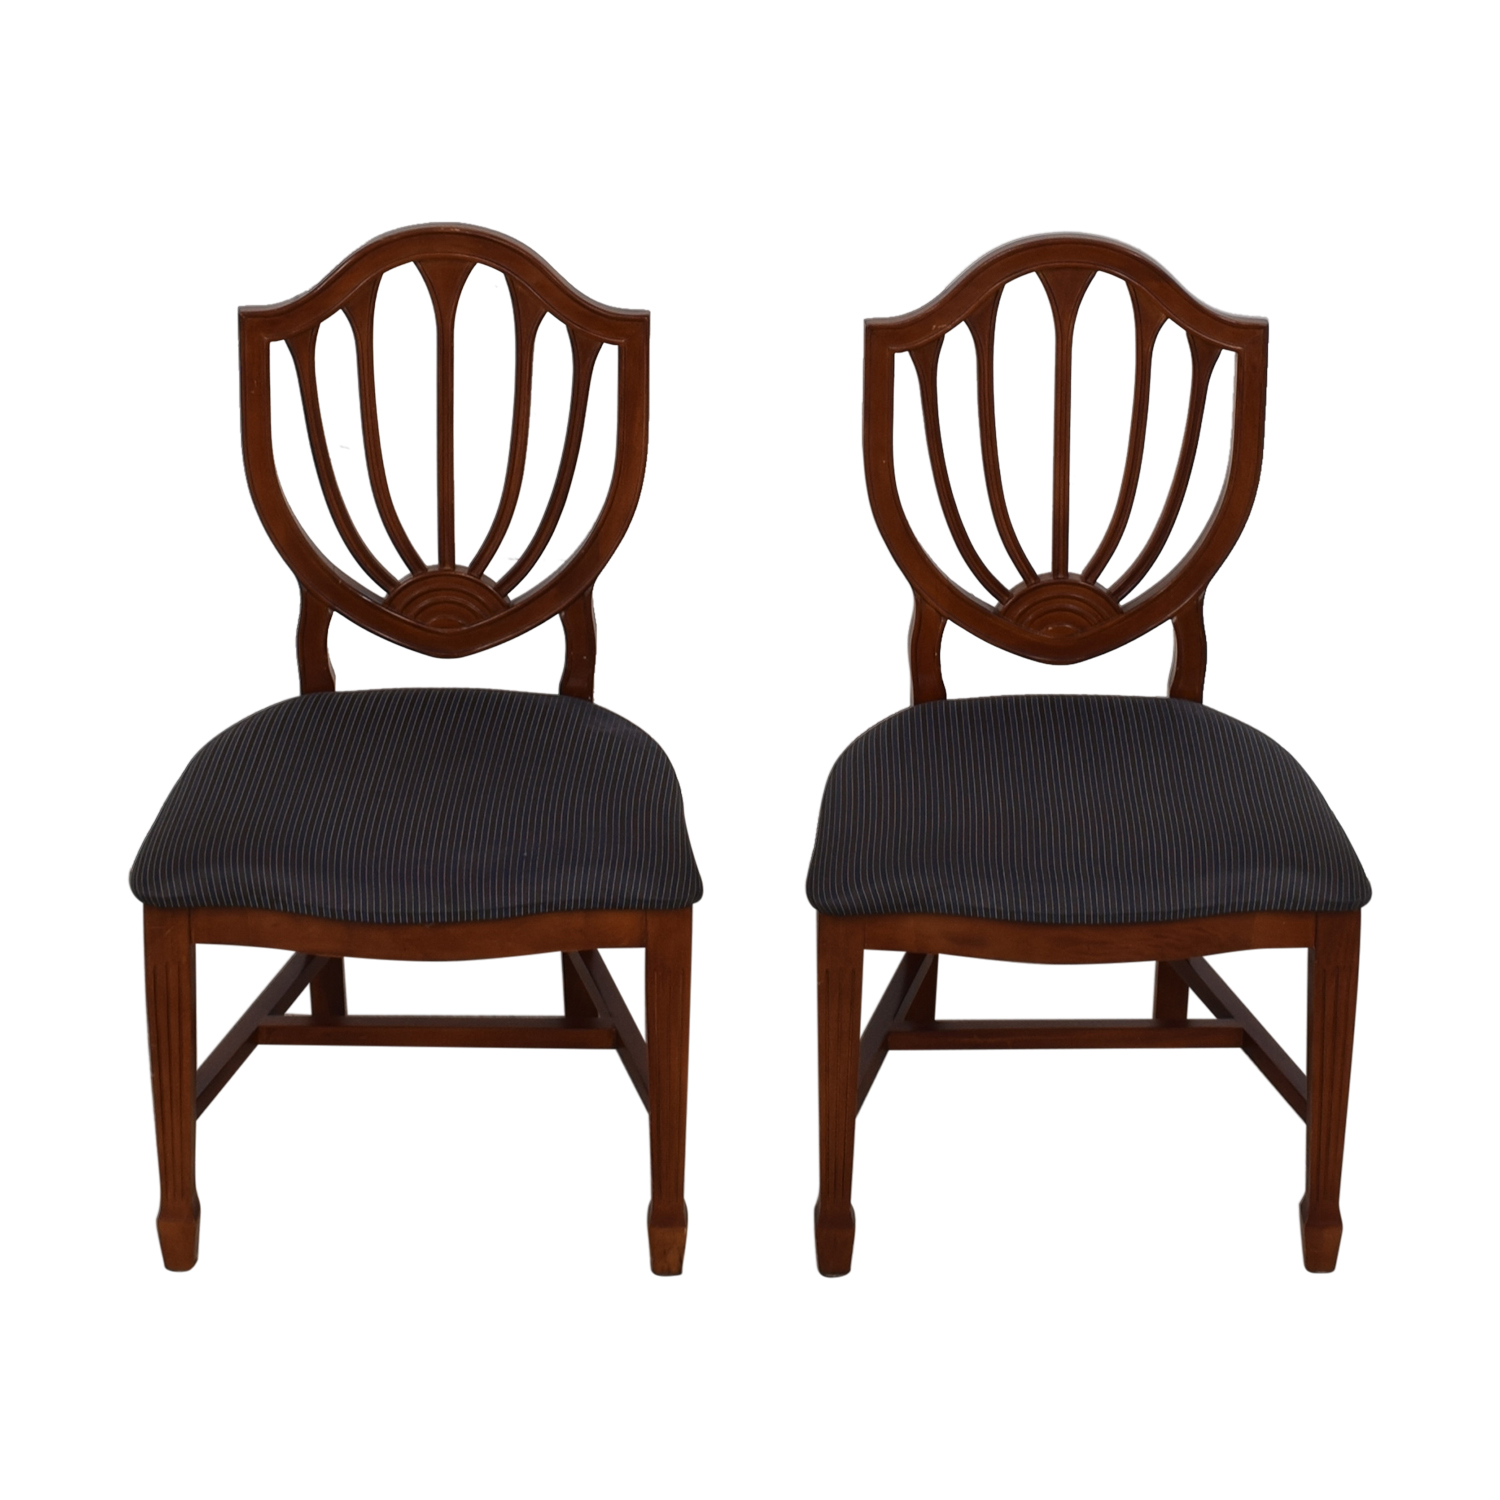 Blue Striped Upholstered Cherry Wood Accent Chairs